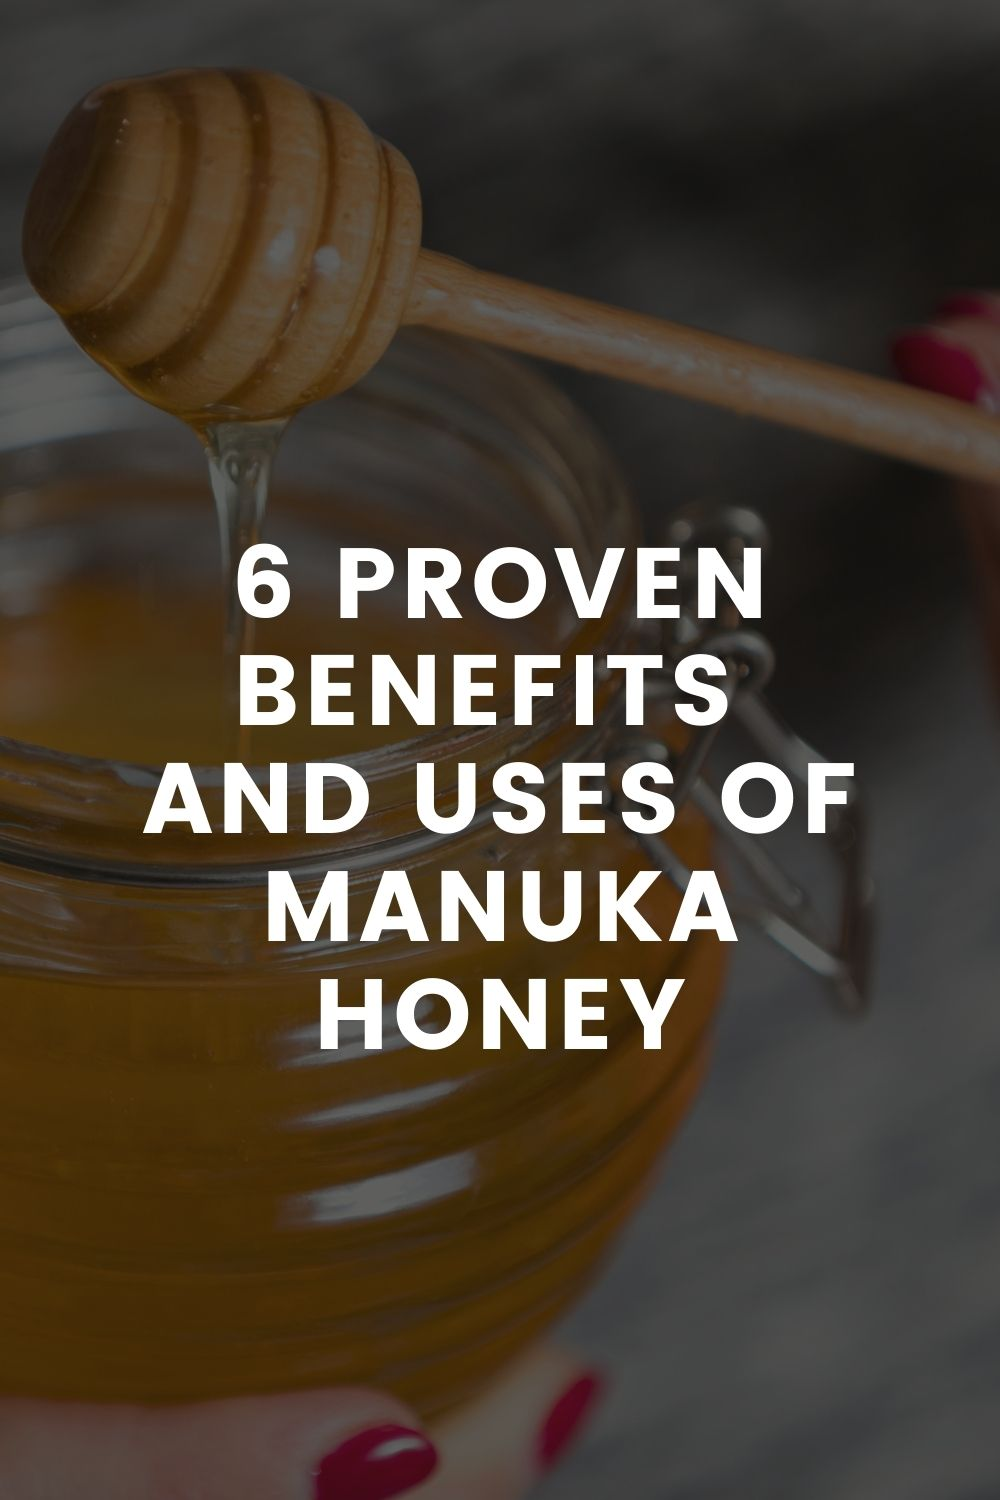 6 Proven Benefits And Uses Of Manuka Honey